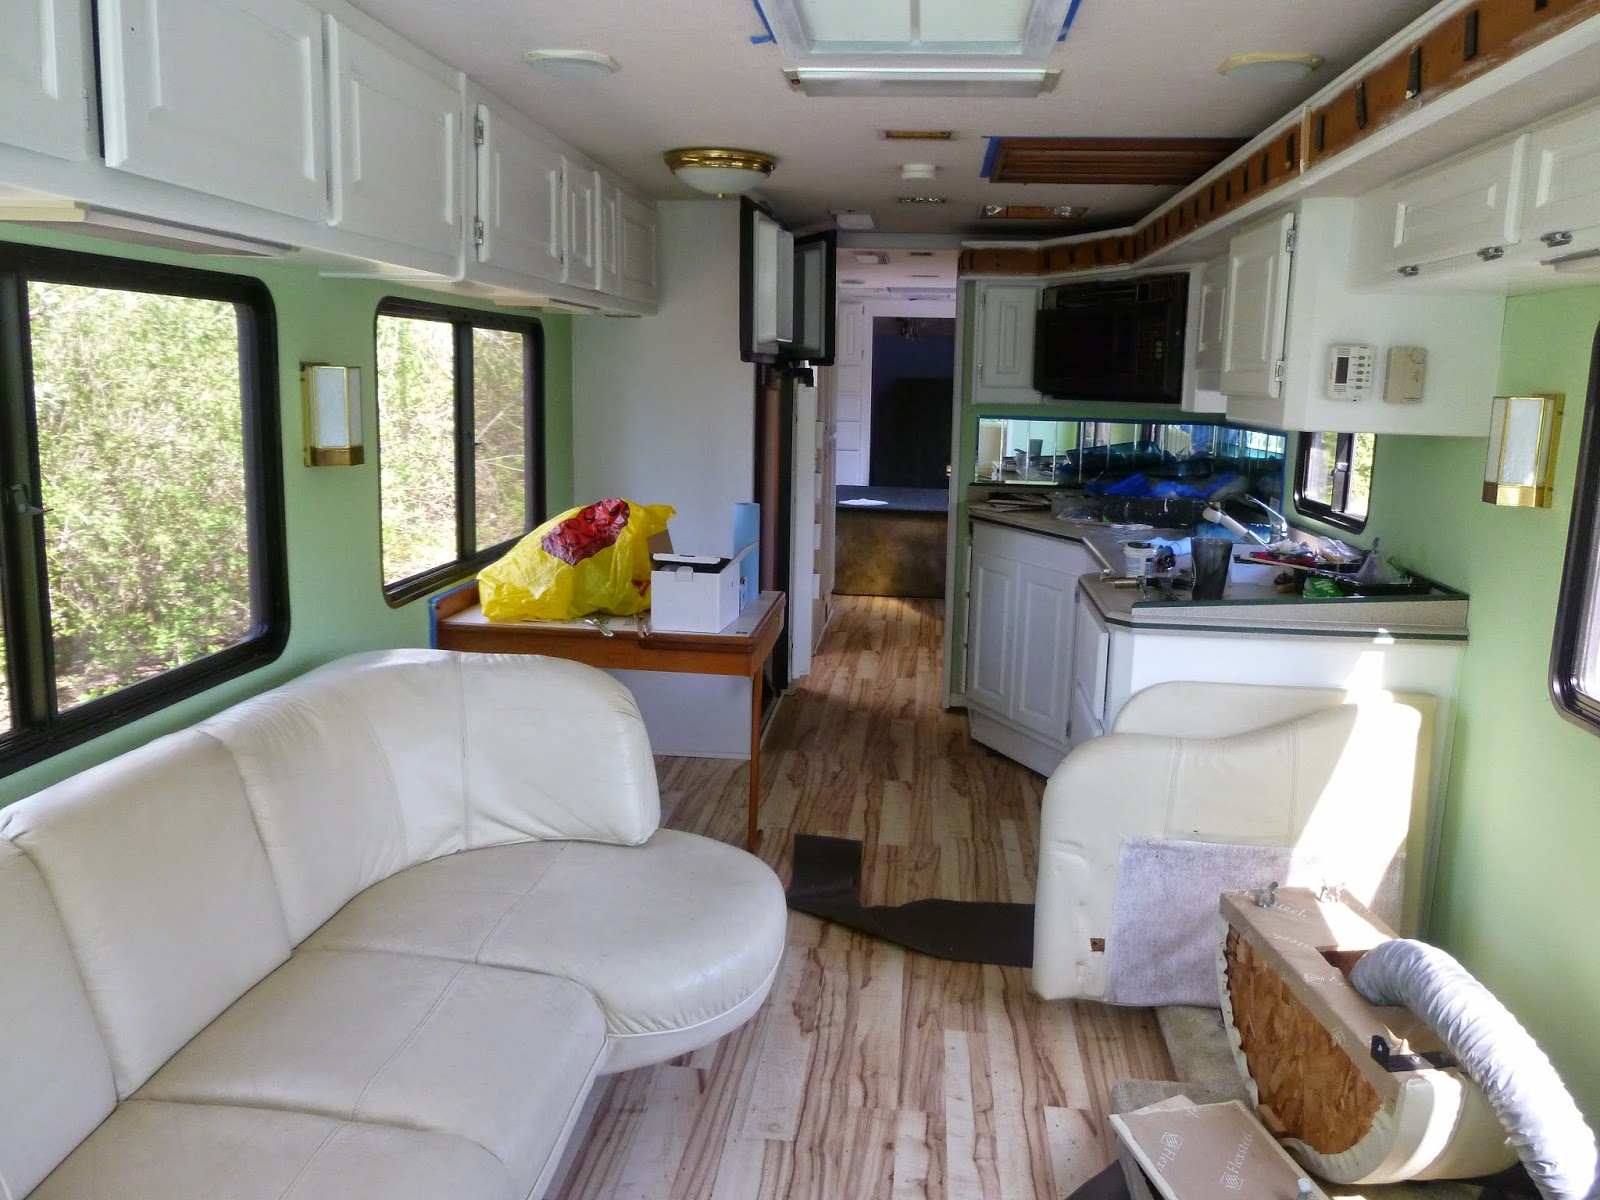 RV Renovation Painting RV Cabinets Updating Cabinet Hardware RV Renovation  How To Spray Paint The Interior Of Your RV In Pictures The Light Paint  Brightens ...